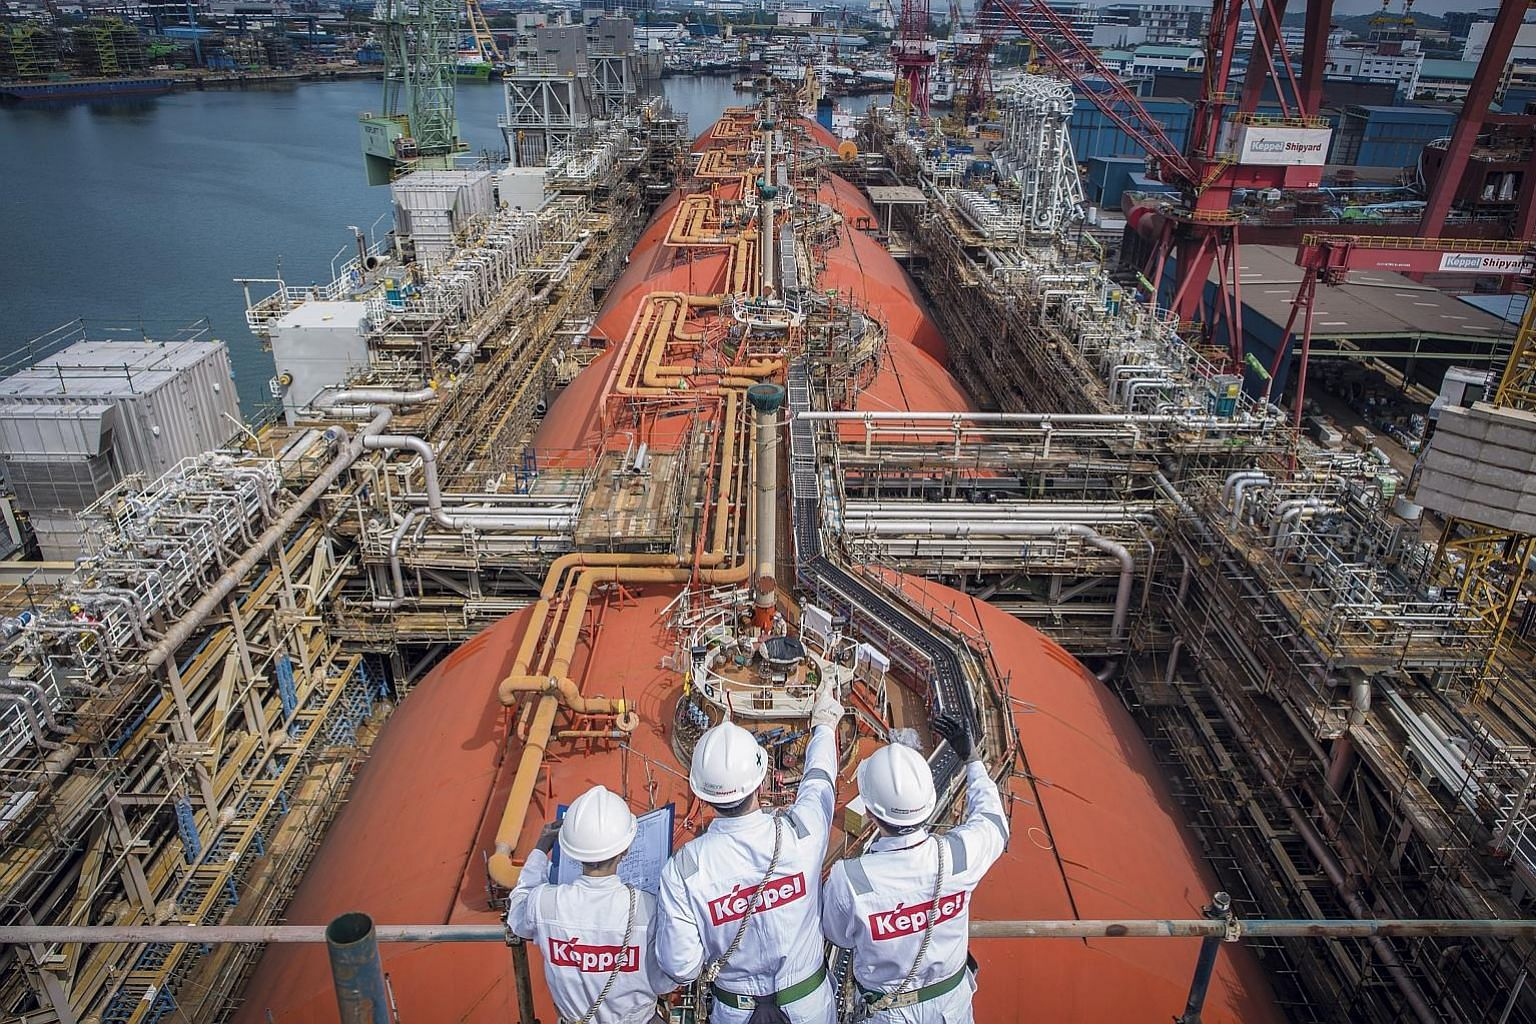 Keppel's businesses include Keppel Offshore & Marine and Keppel Infrastructure. CEO Loh Chin Hua said Keppel is simplifying its corporate structure, given the privatisation of Keppel Land, Keppel Capital's restructuring of its asset management busine